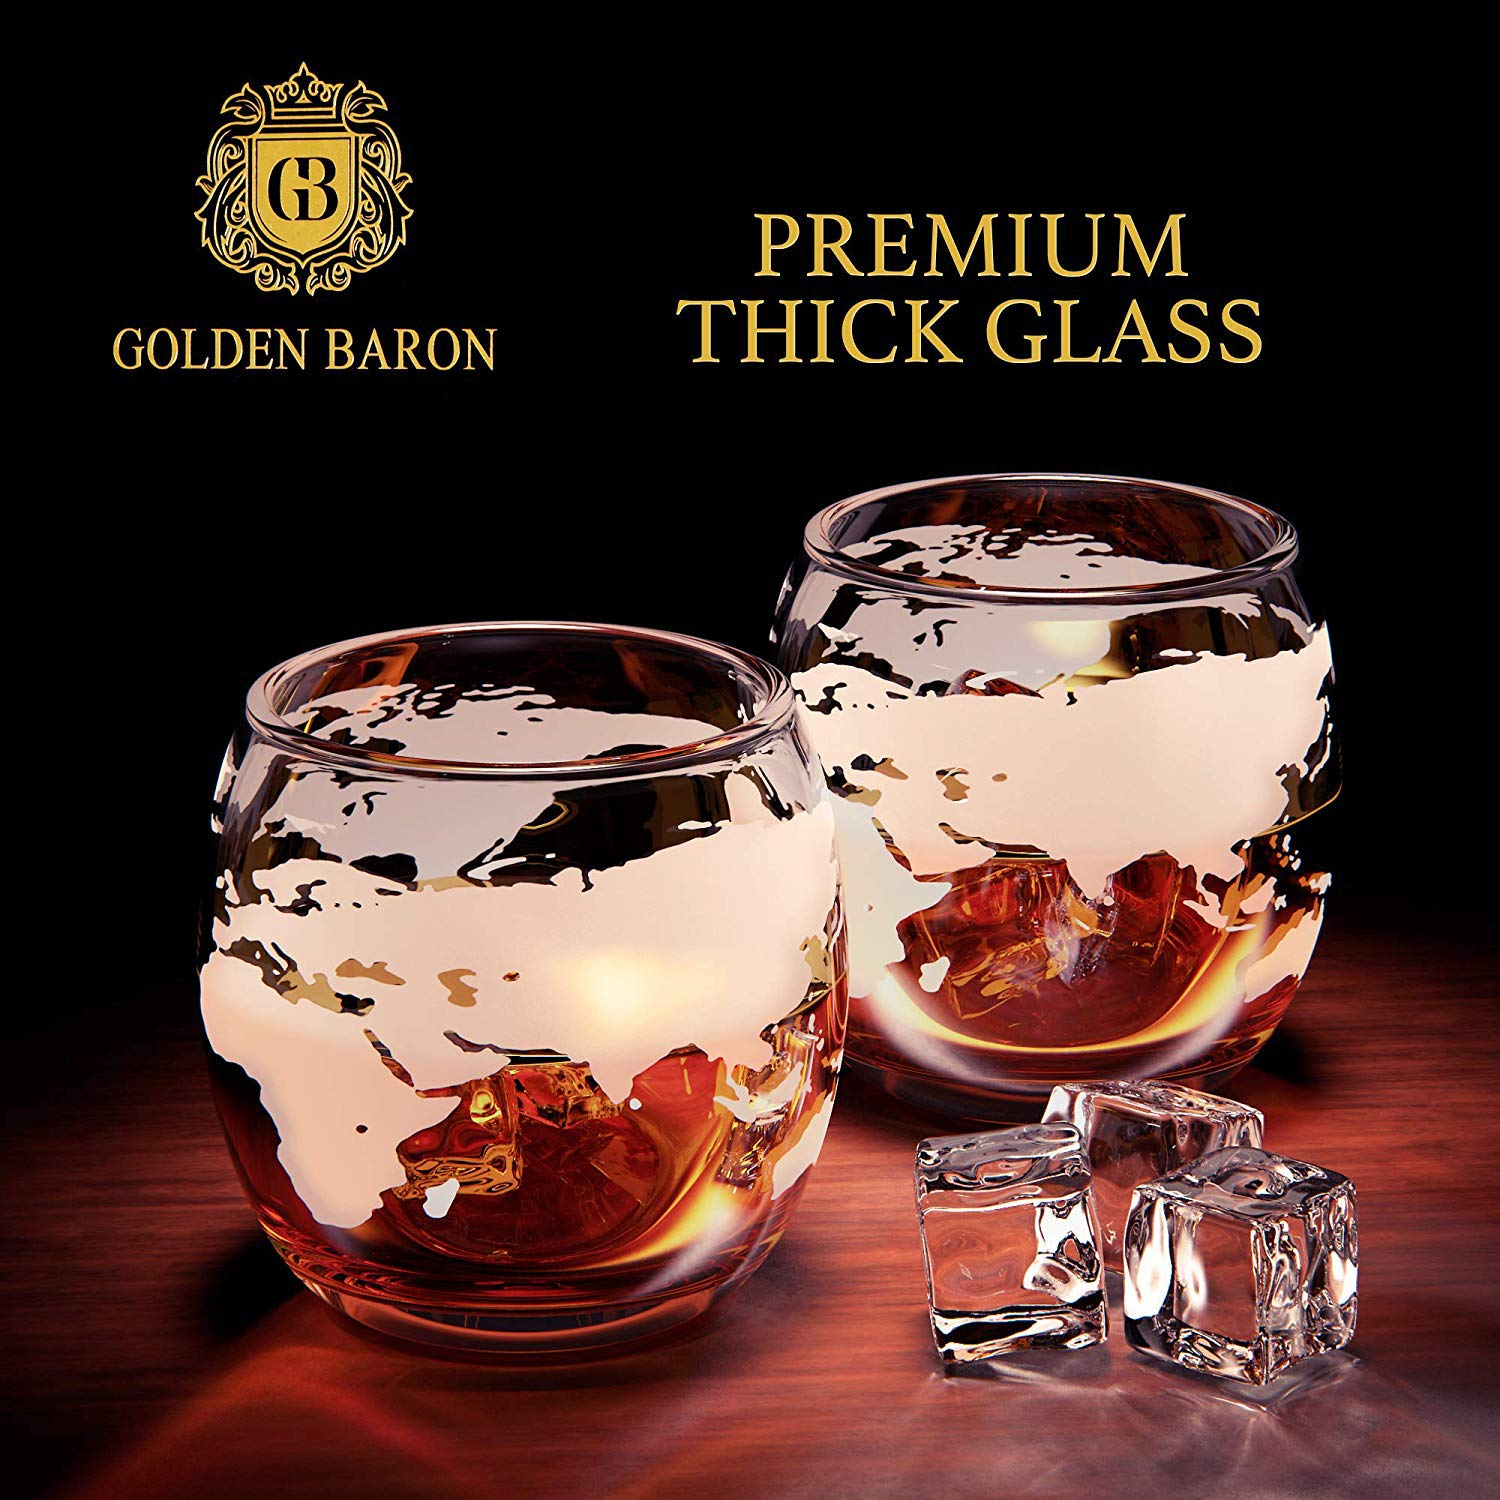 Globe Whiskey Decanter and Glass Set - Double Thickness Glass and Crystal Stopper - Liquor Decanter and Dispenser by Golden Baron (Image #3)